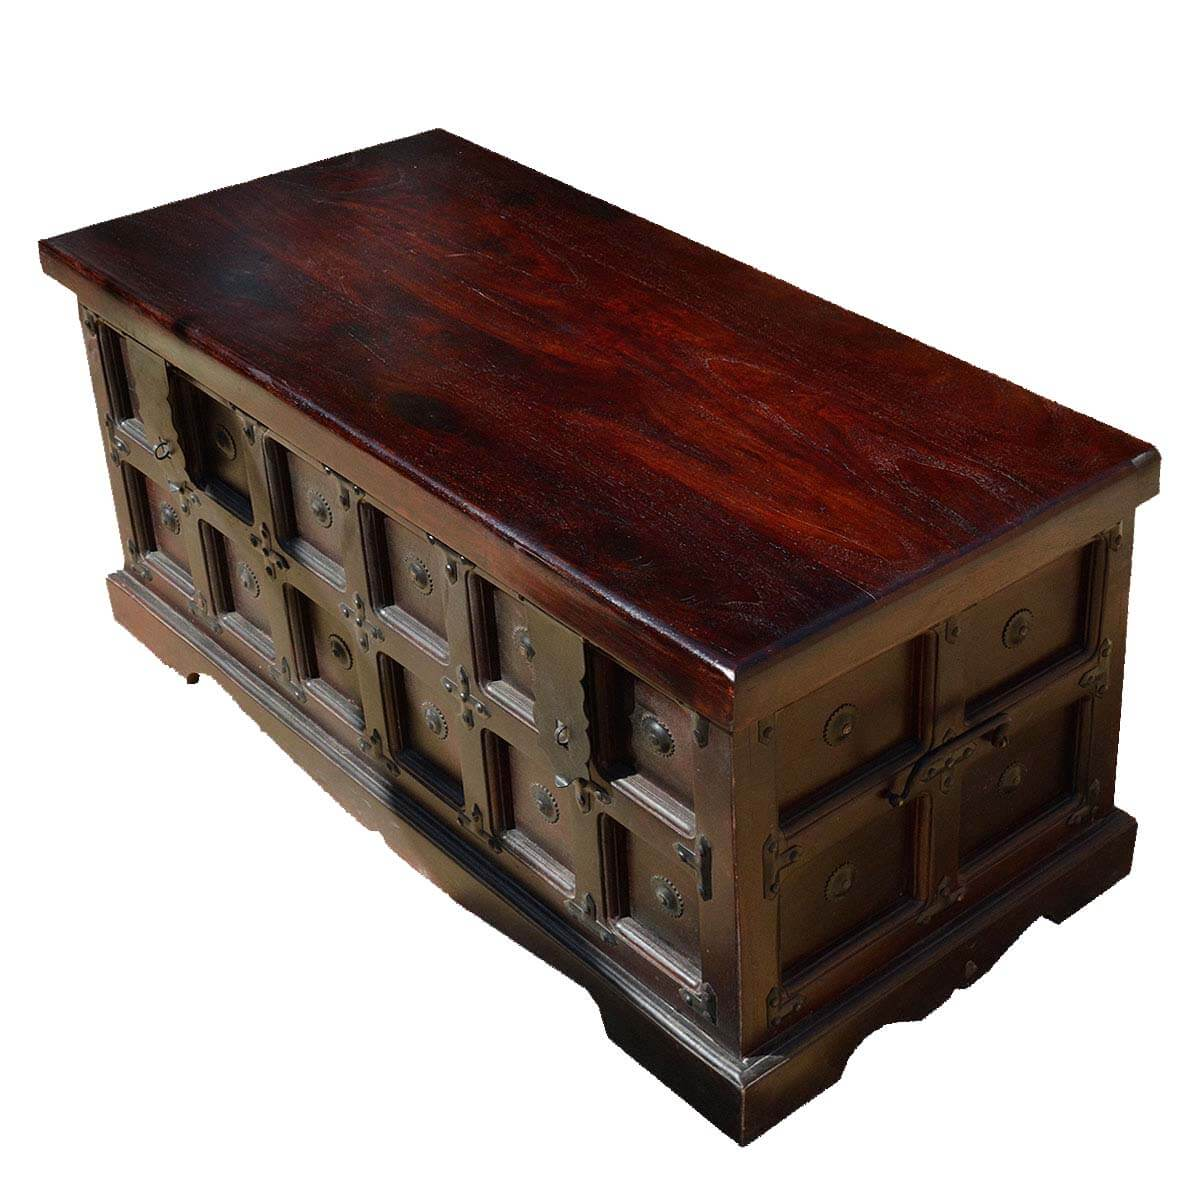 Surprising Beaufort Kokanee Gothic Solid Wood Standing Coffee Table Chest Gmtry Best Dining Table And Chair Ideas Images Gmtryco